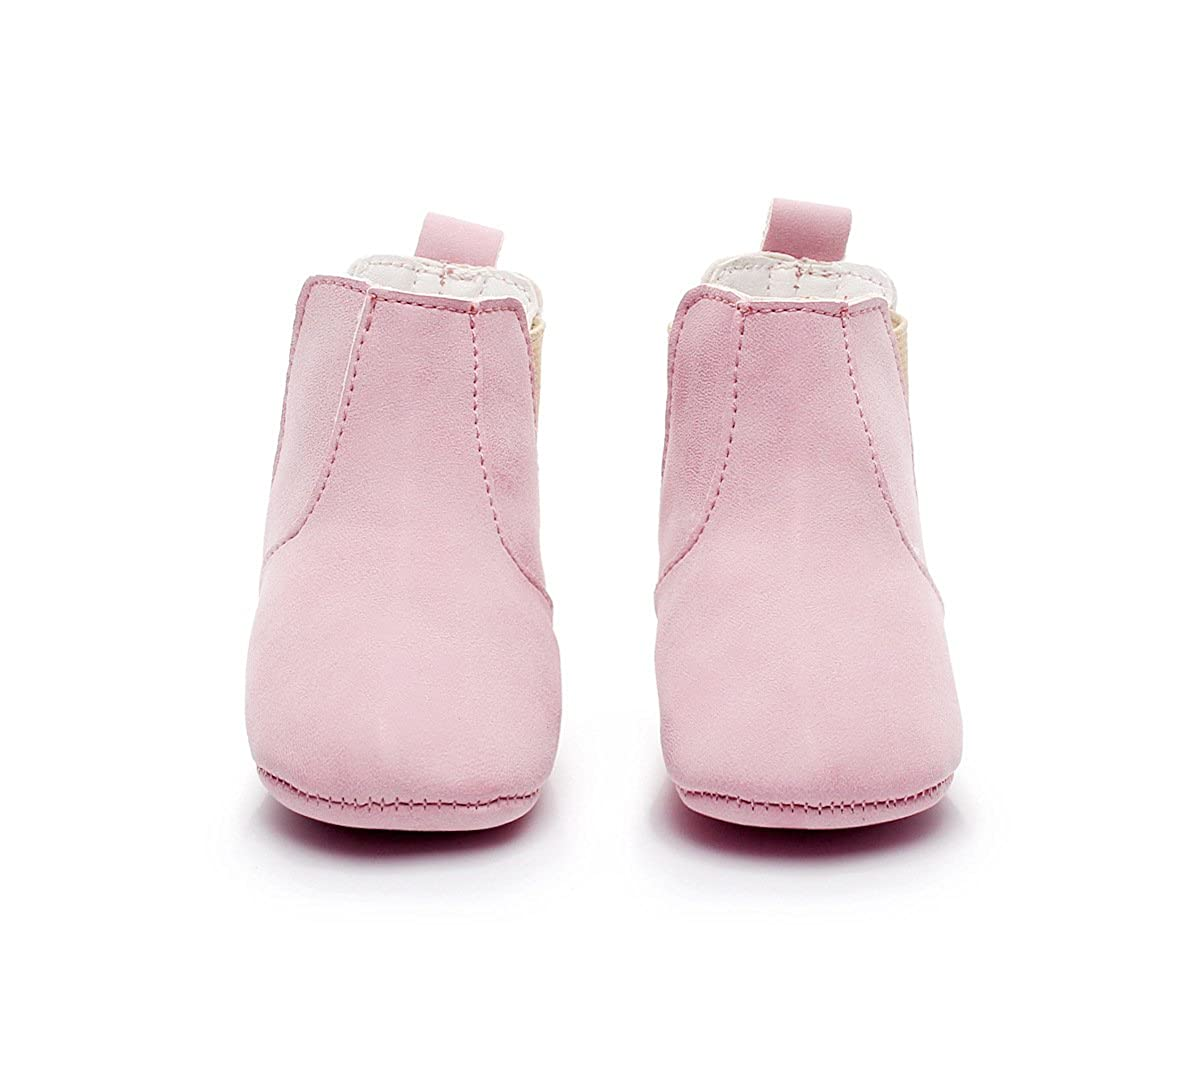 FLT Toddler Ankle Chelsea Boots Booties Baby Girl Boy Leather Booties First Walkers Shoes